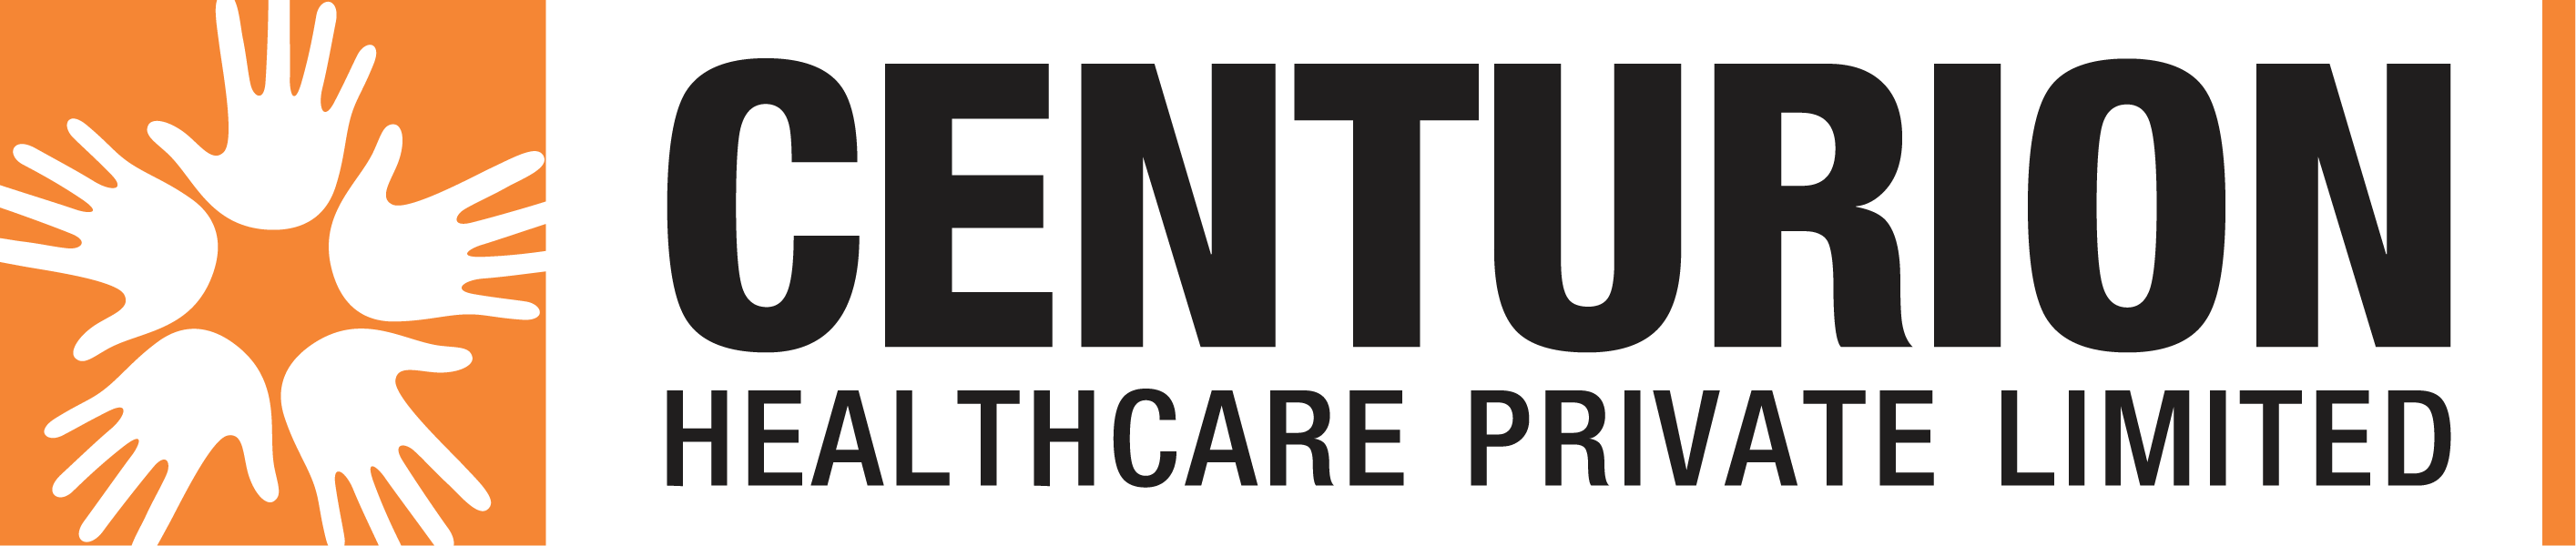 Centurion Health Care